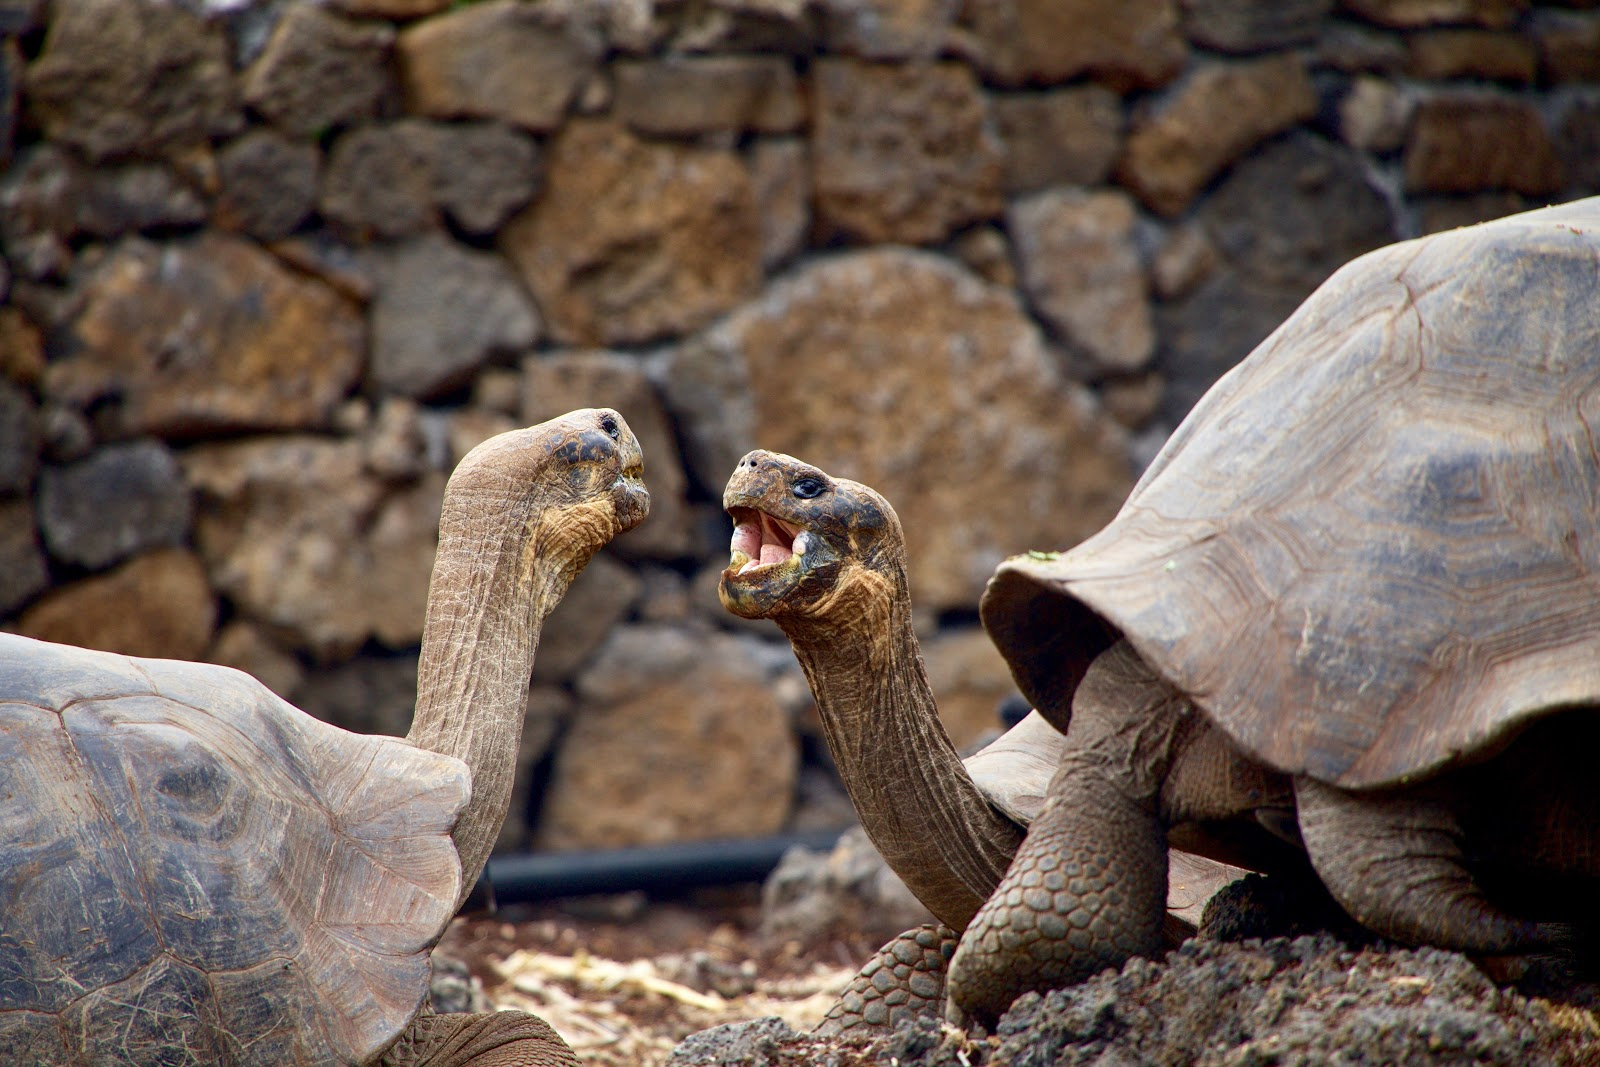 Two tortoises about to fight